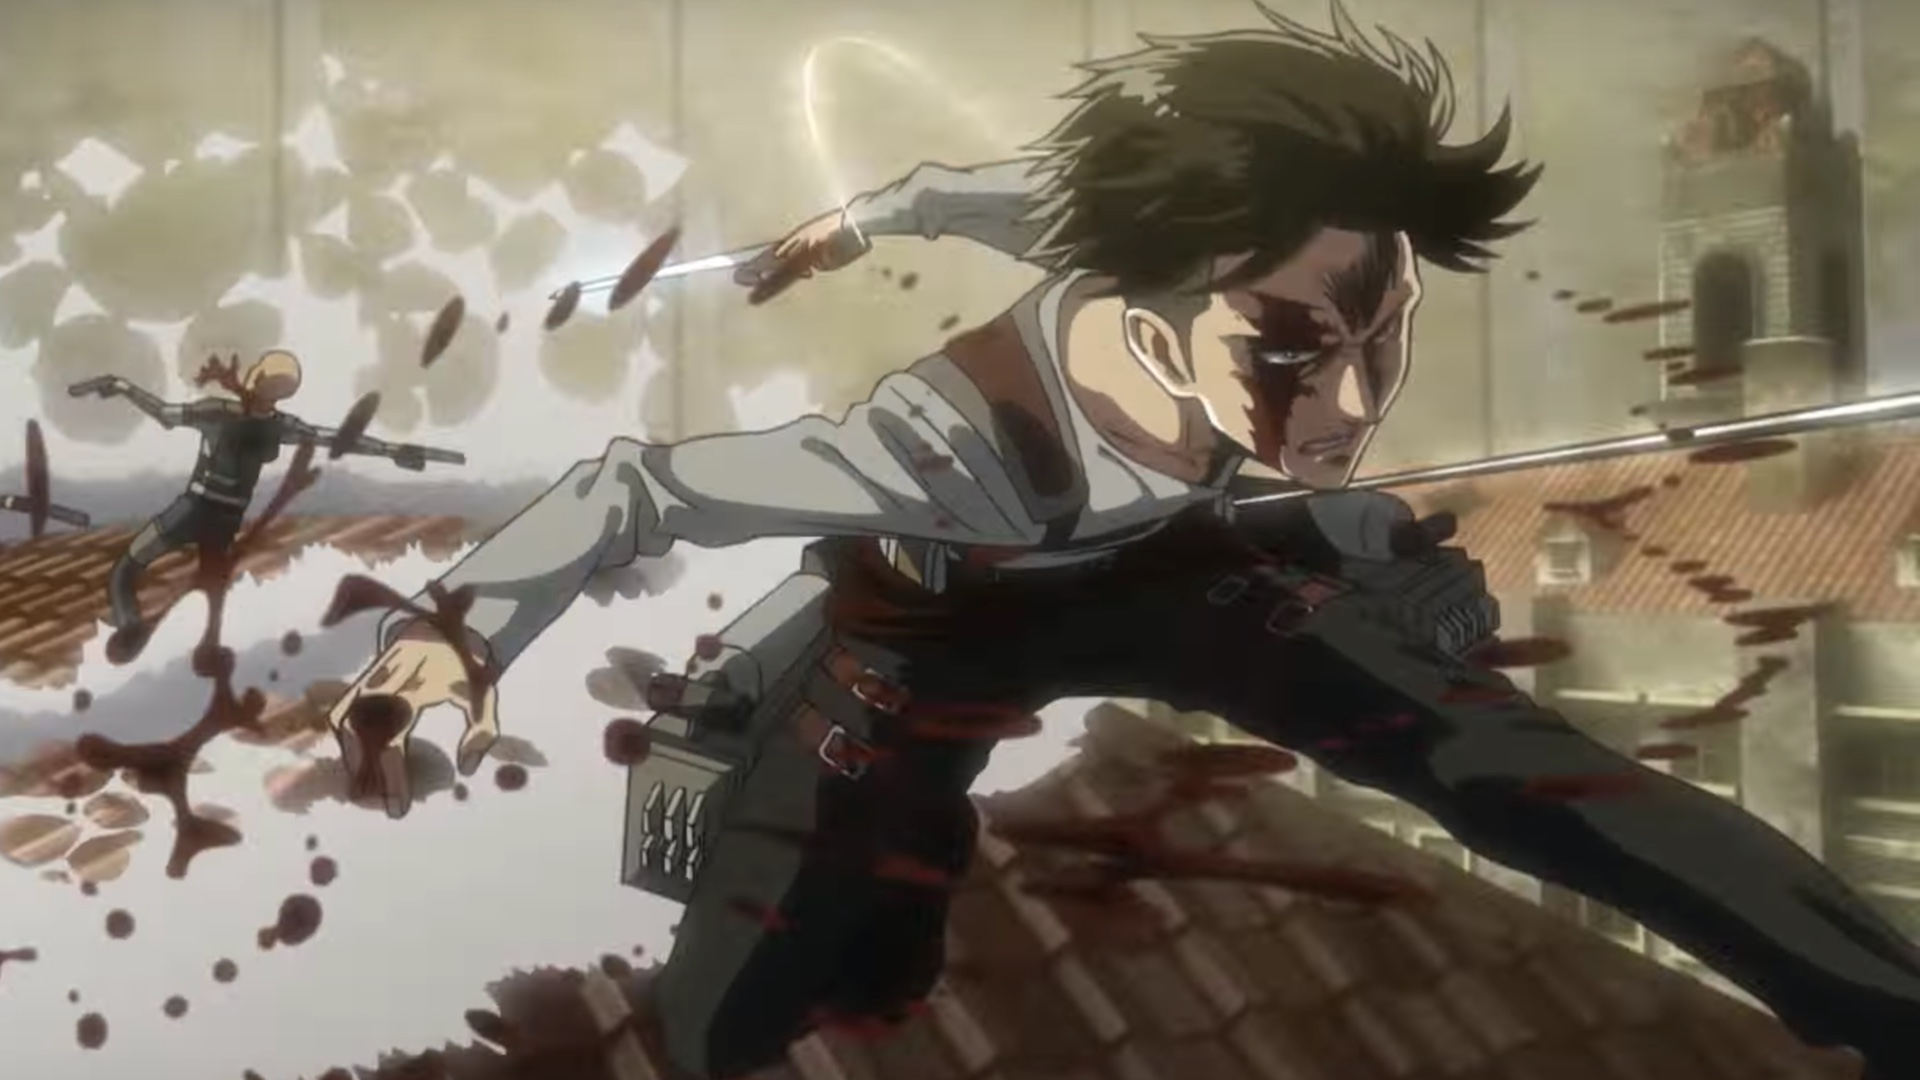 4k Wallpaper Latest Attack On Titan Season 3 Part 2 Wallpaper